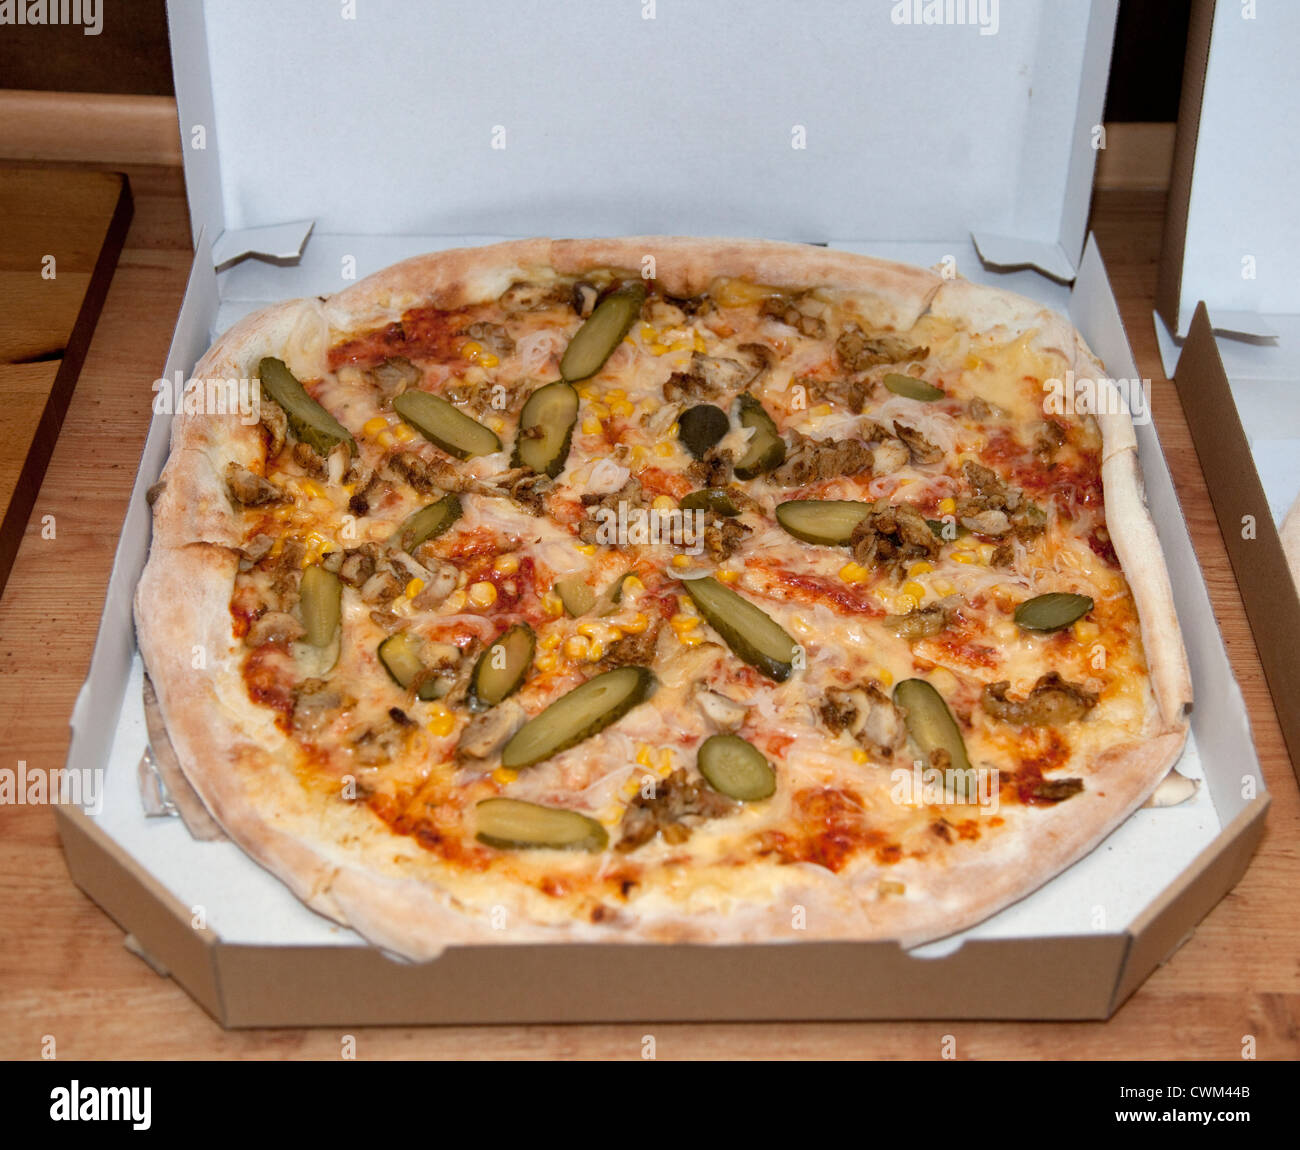 Polish pizza with plenty of pickles corn and cheese delivered in a cardboard box. Lodz Central Poland - Stock Image